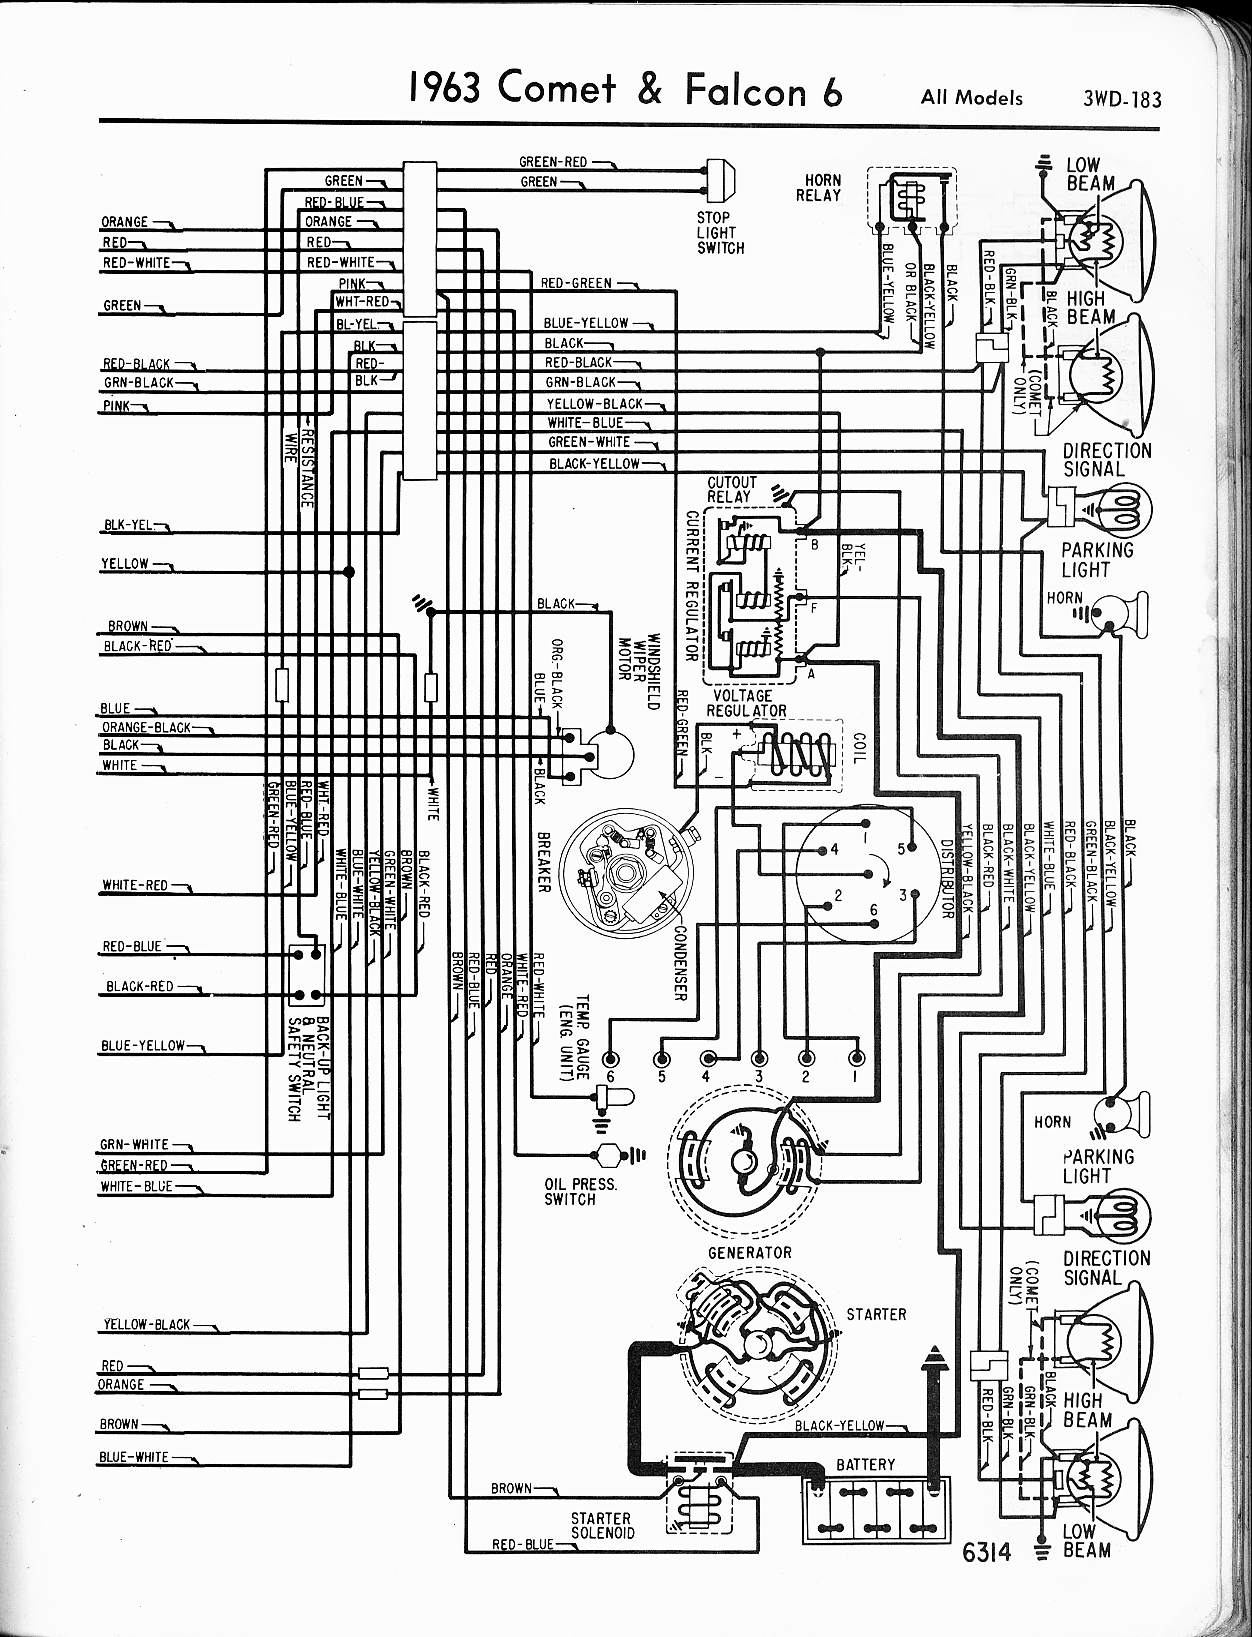 DIAGRAM] Diagram 1964 Ranchero Wiring Diagrams FULL Version HD Quality Wiring  Diagrams - WIRINGENCLOSURE.DRIVEFERMIERLYONNAIS.FRwiringenclosure.drivefermierlyonnais.fr